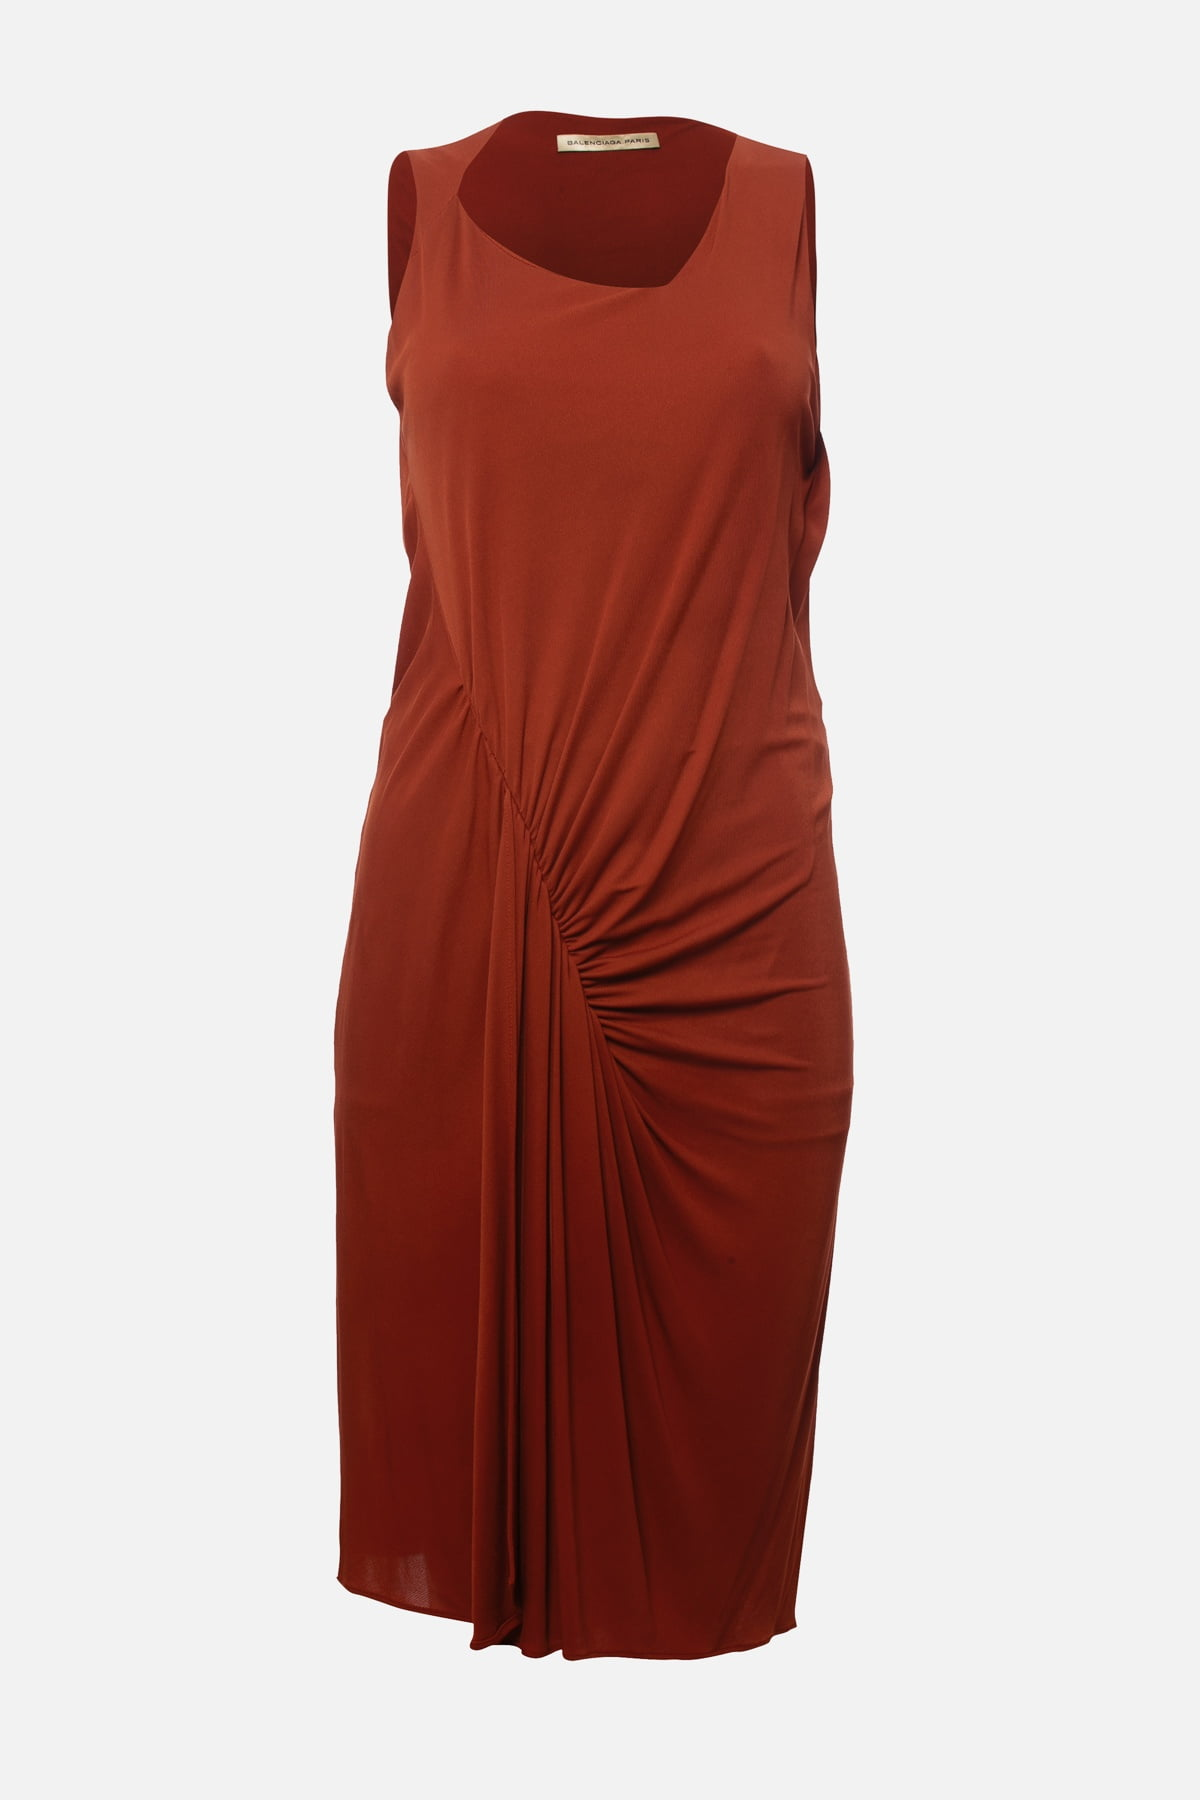 ROUX DRAPED FRONT SLEEVELESS DRESS